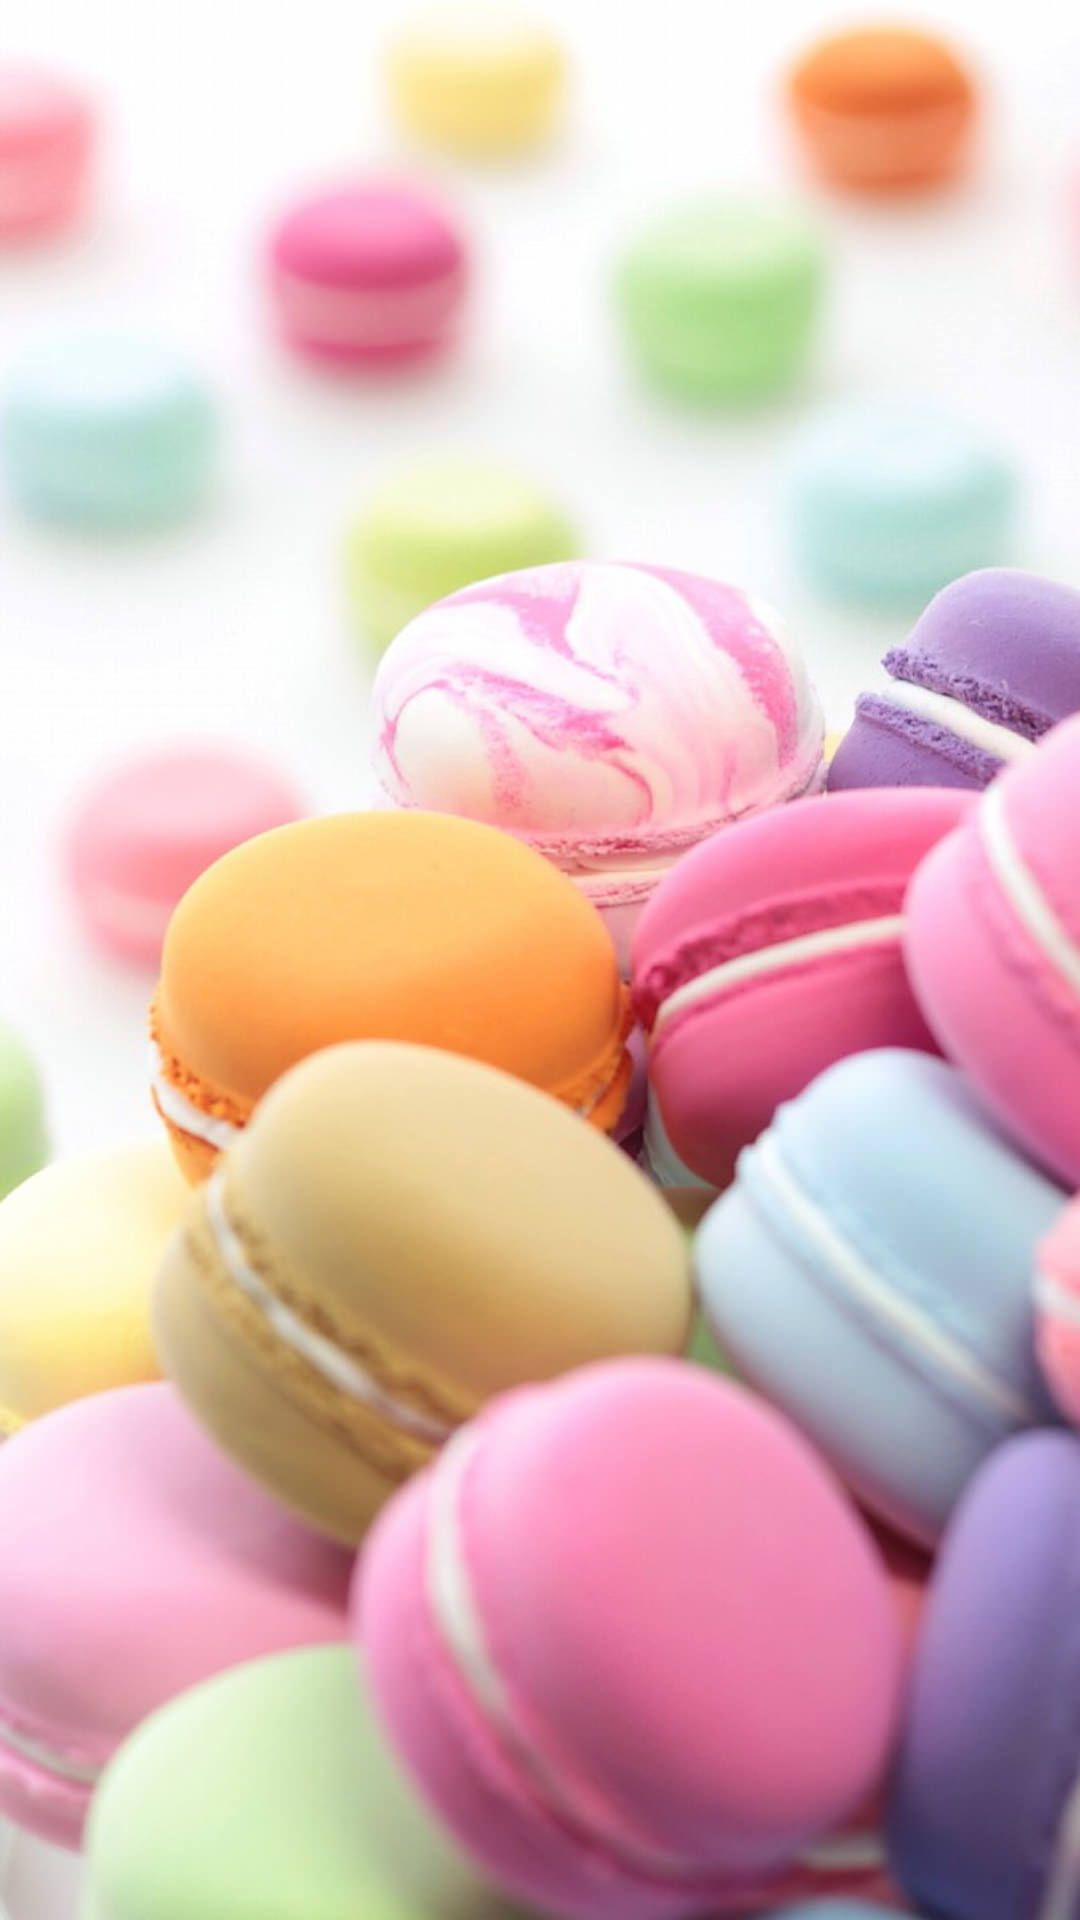 2019 年のcute Macaroon Iphone6s Wallpaper Iphone Wallpaper